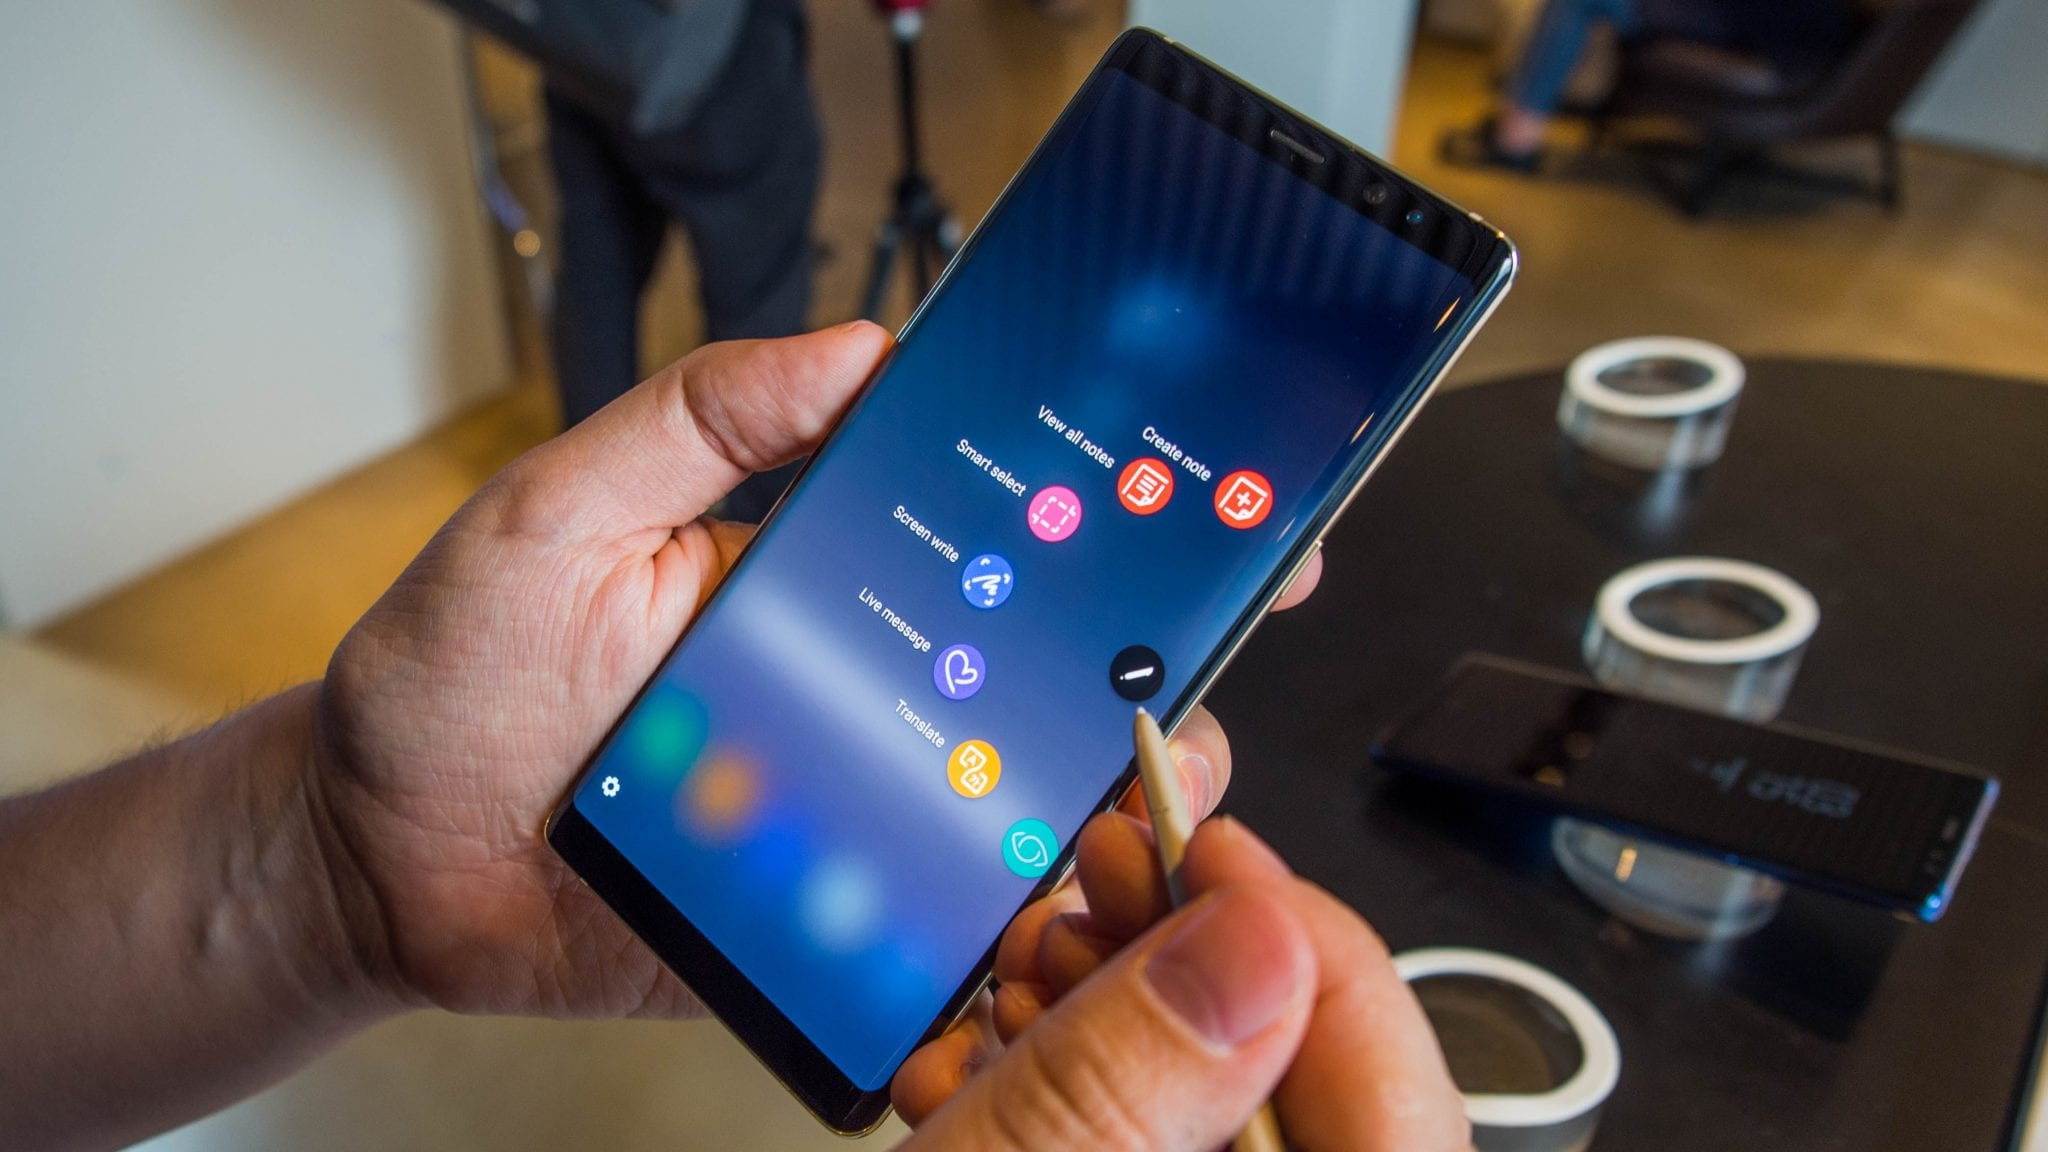 Samsung Galaxy note 9 price